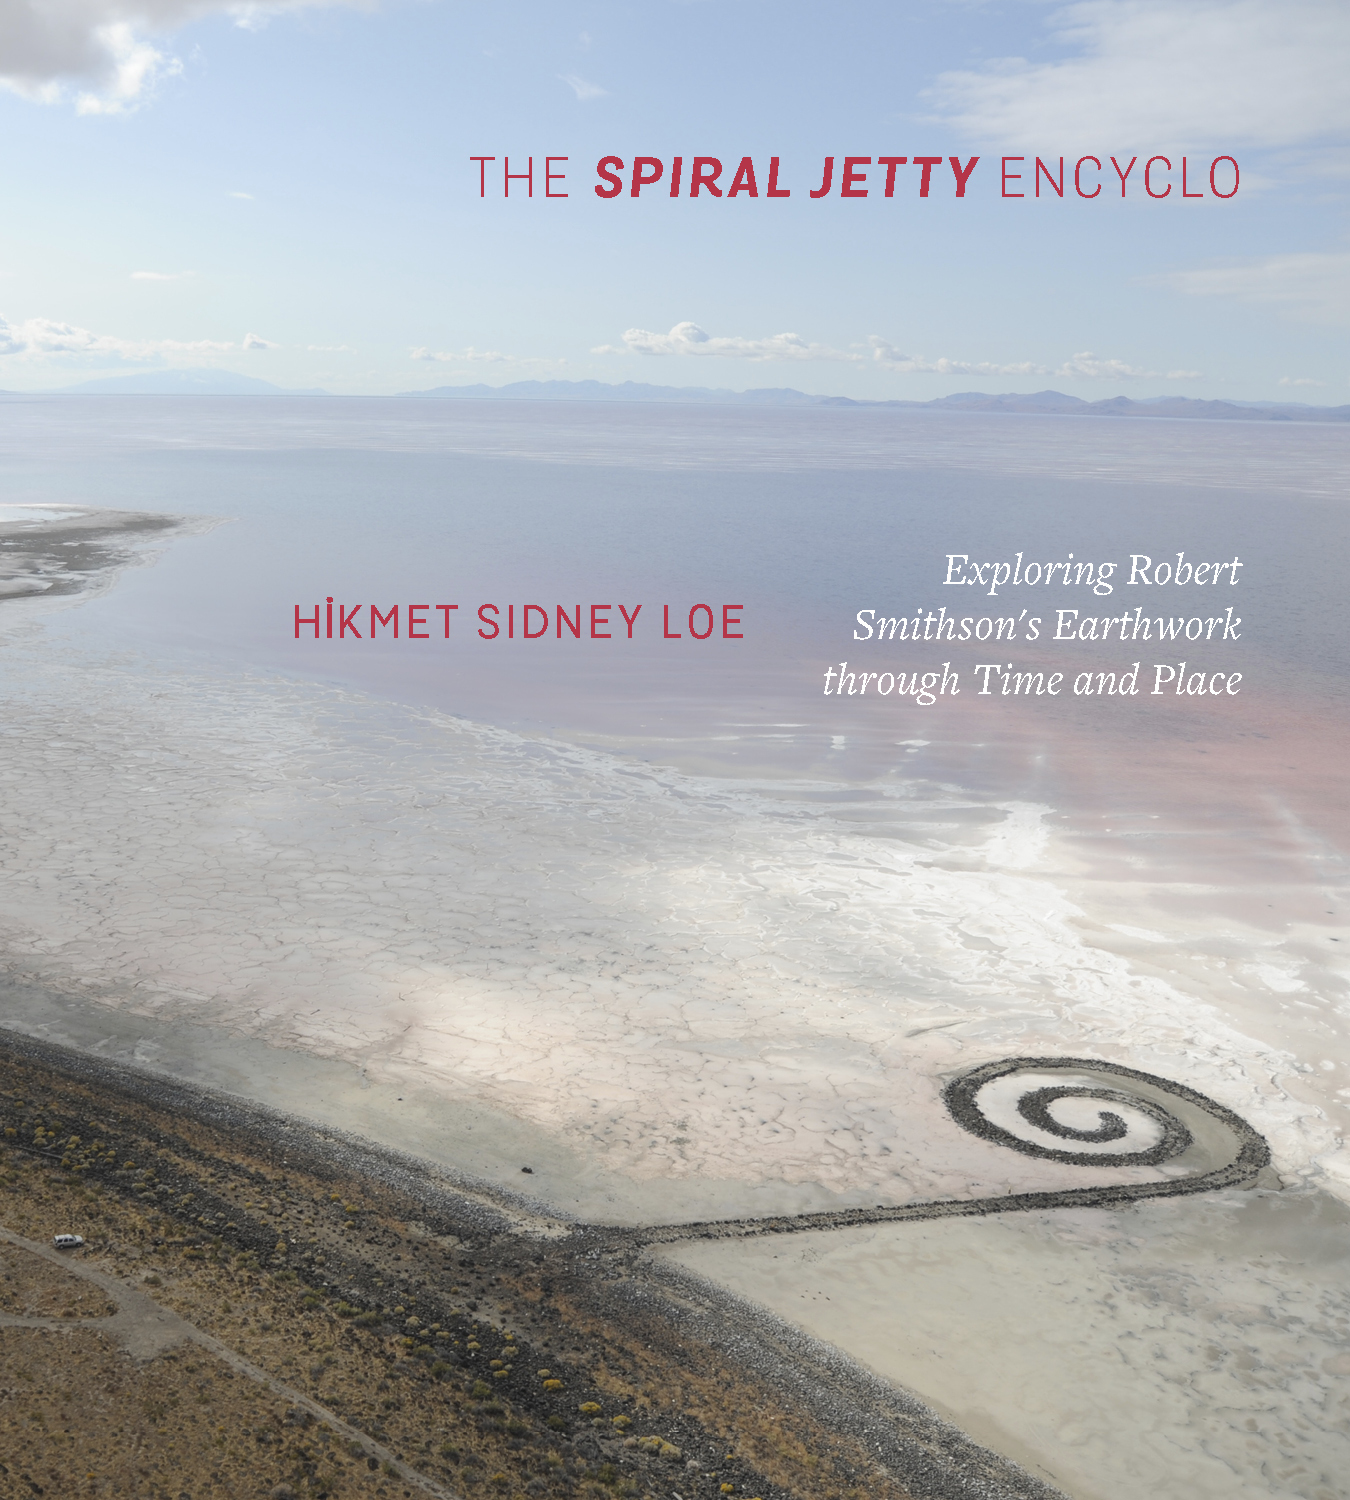 The Spiral Jetty Encyclo: Exploring Robert Smithson's Earthwork through Time and Place